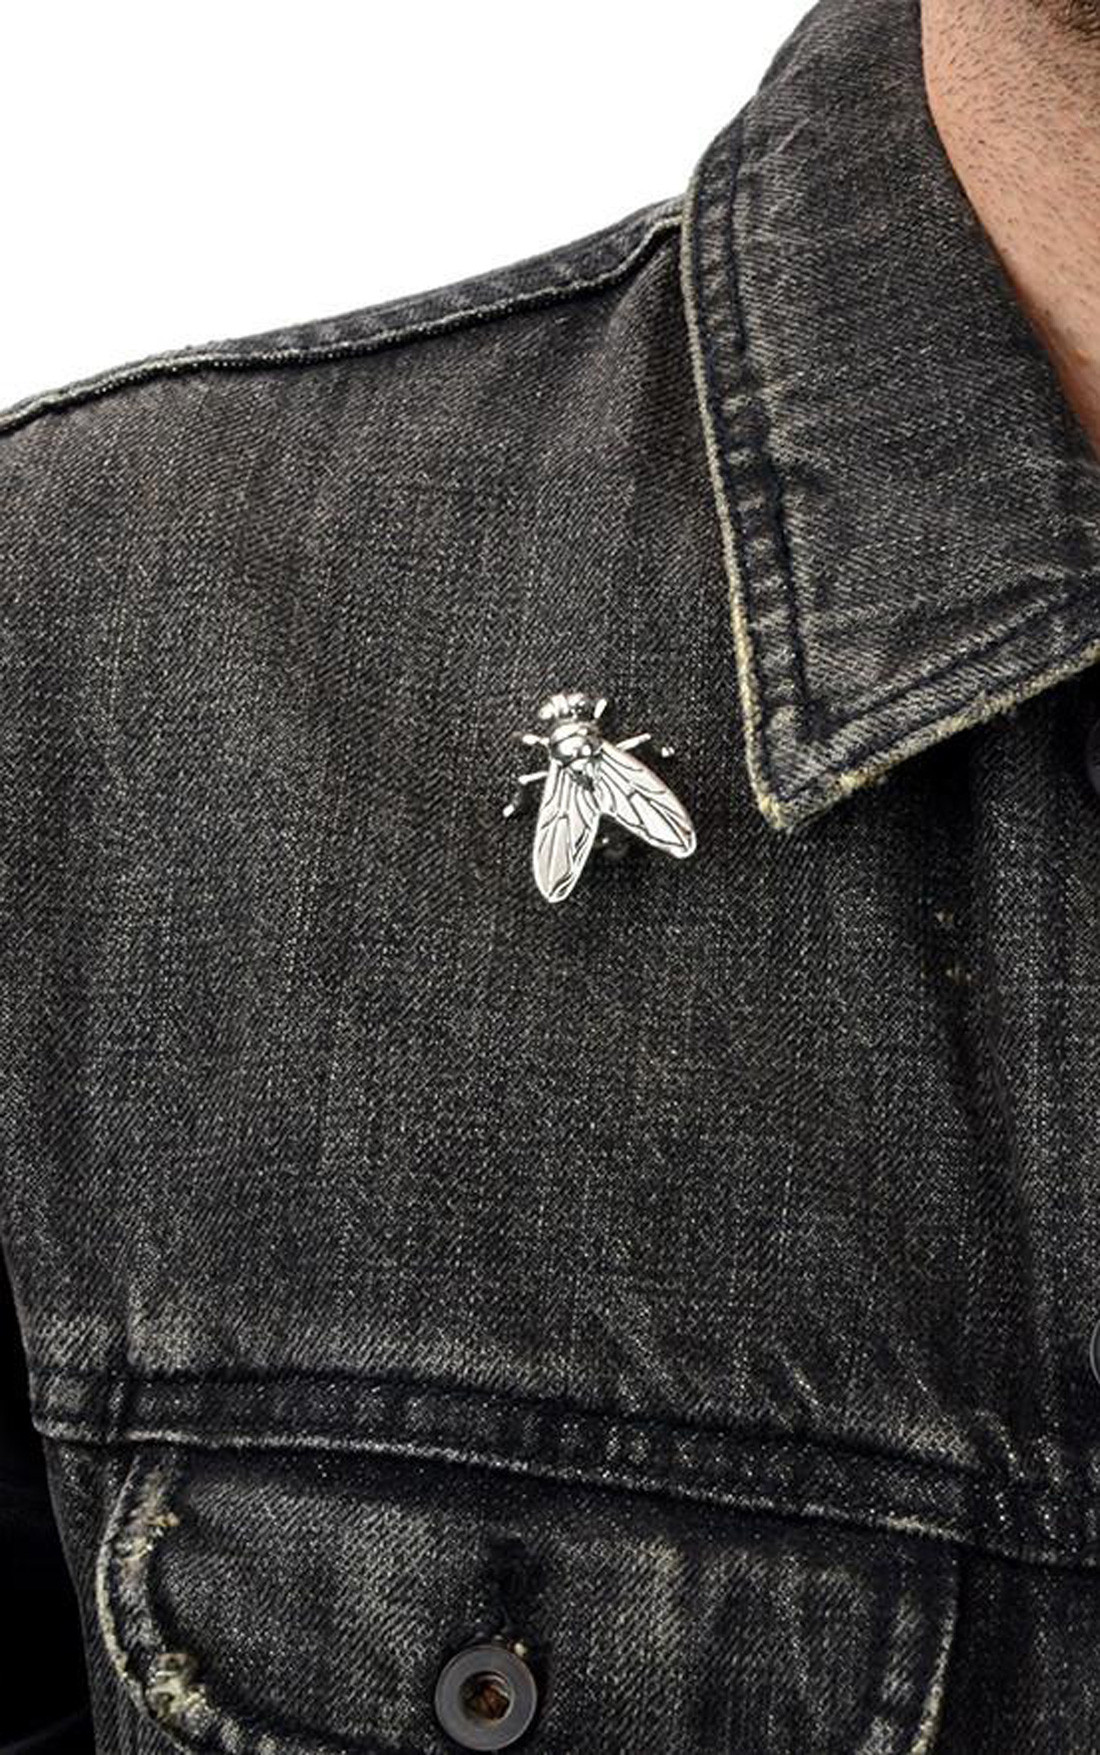 King Baby - Fly Lapel Pin (A10-5572)